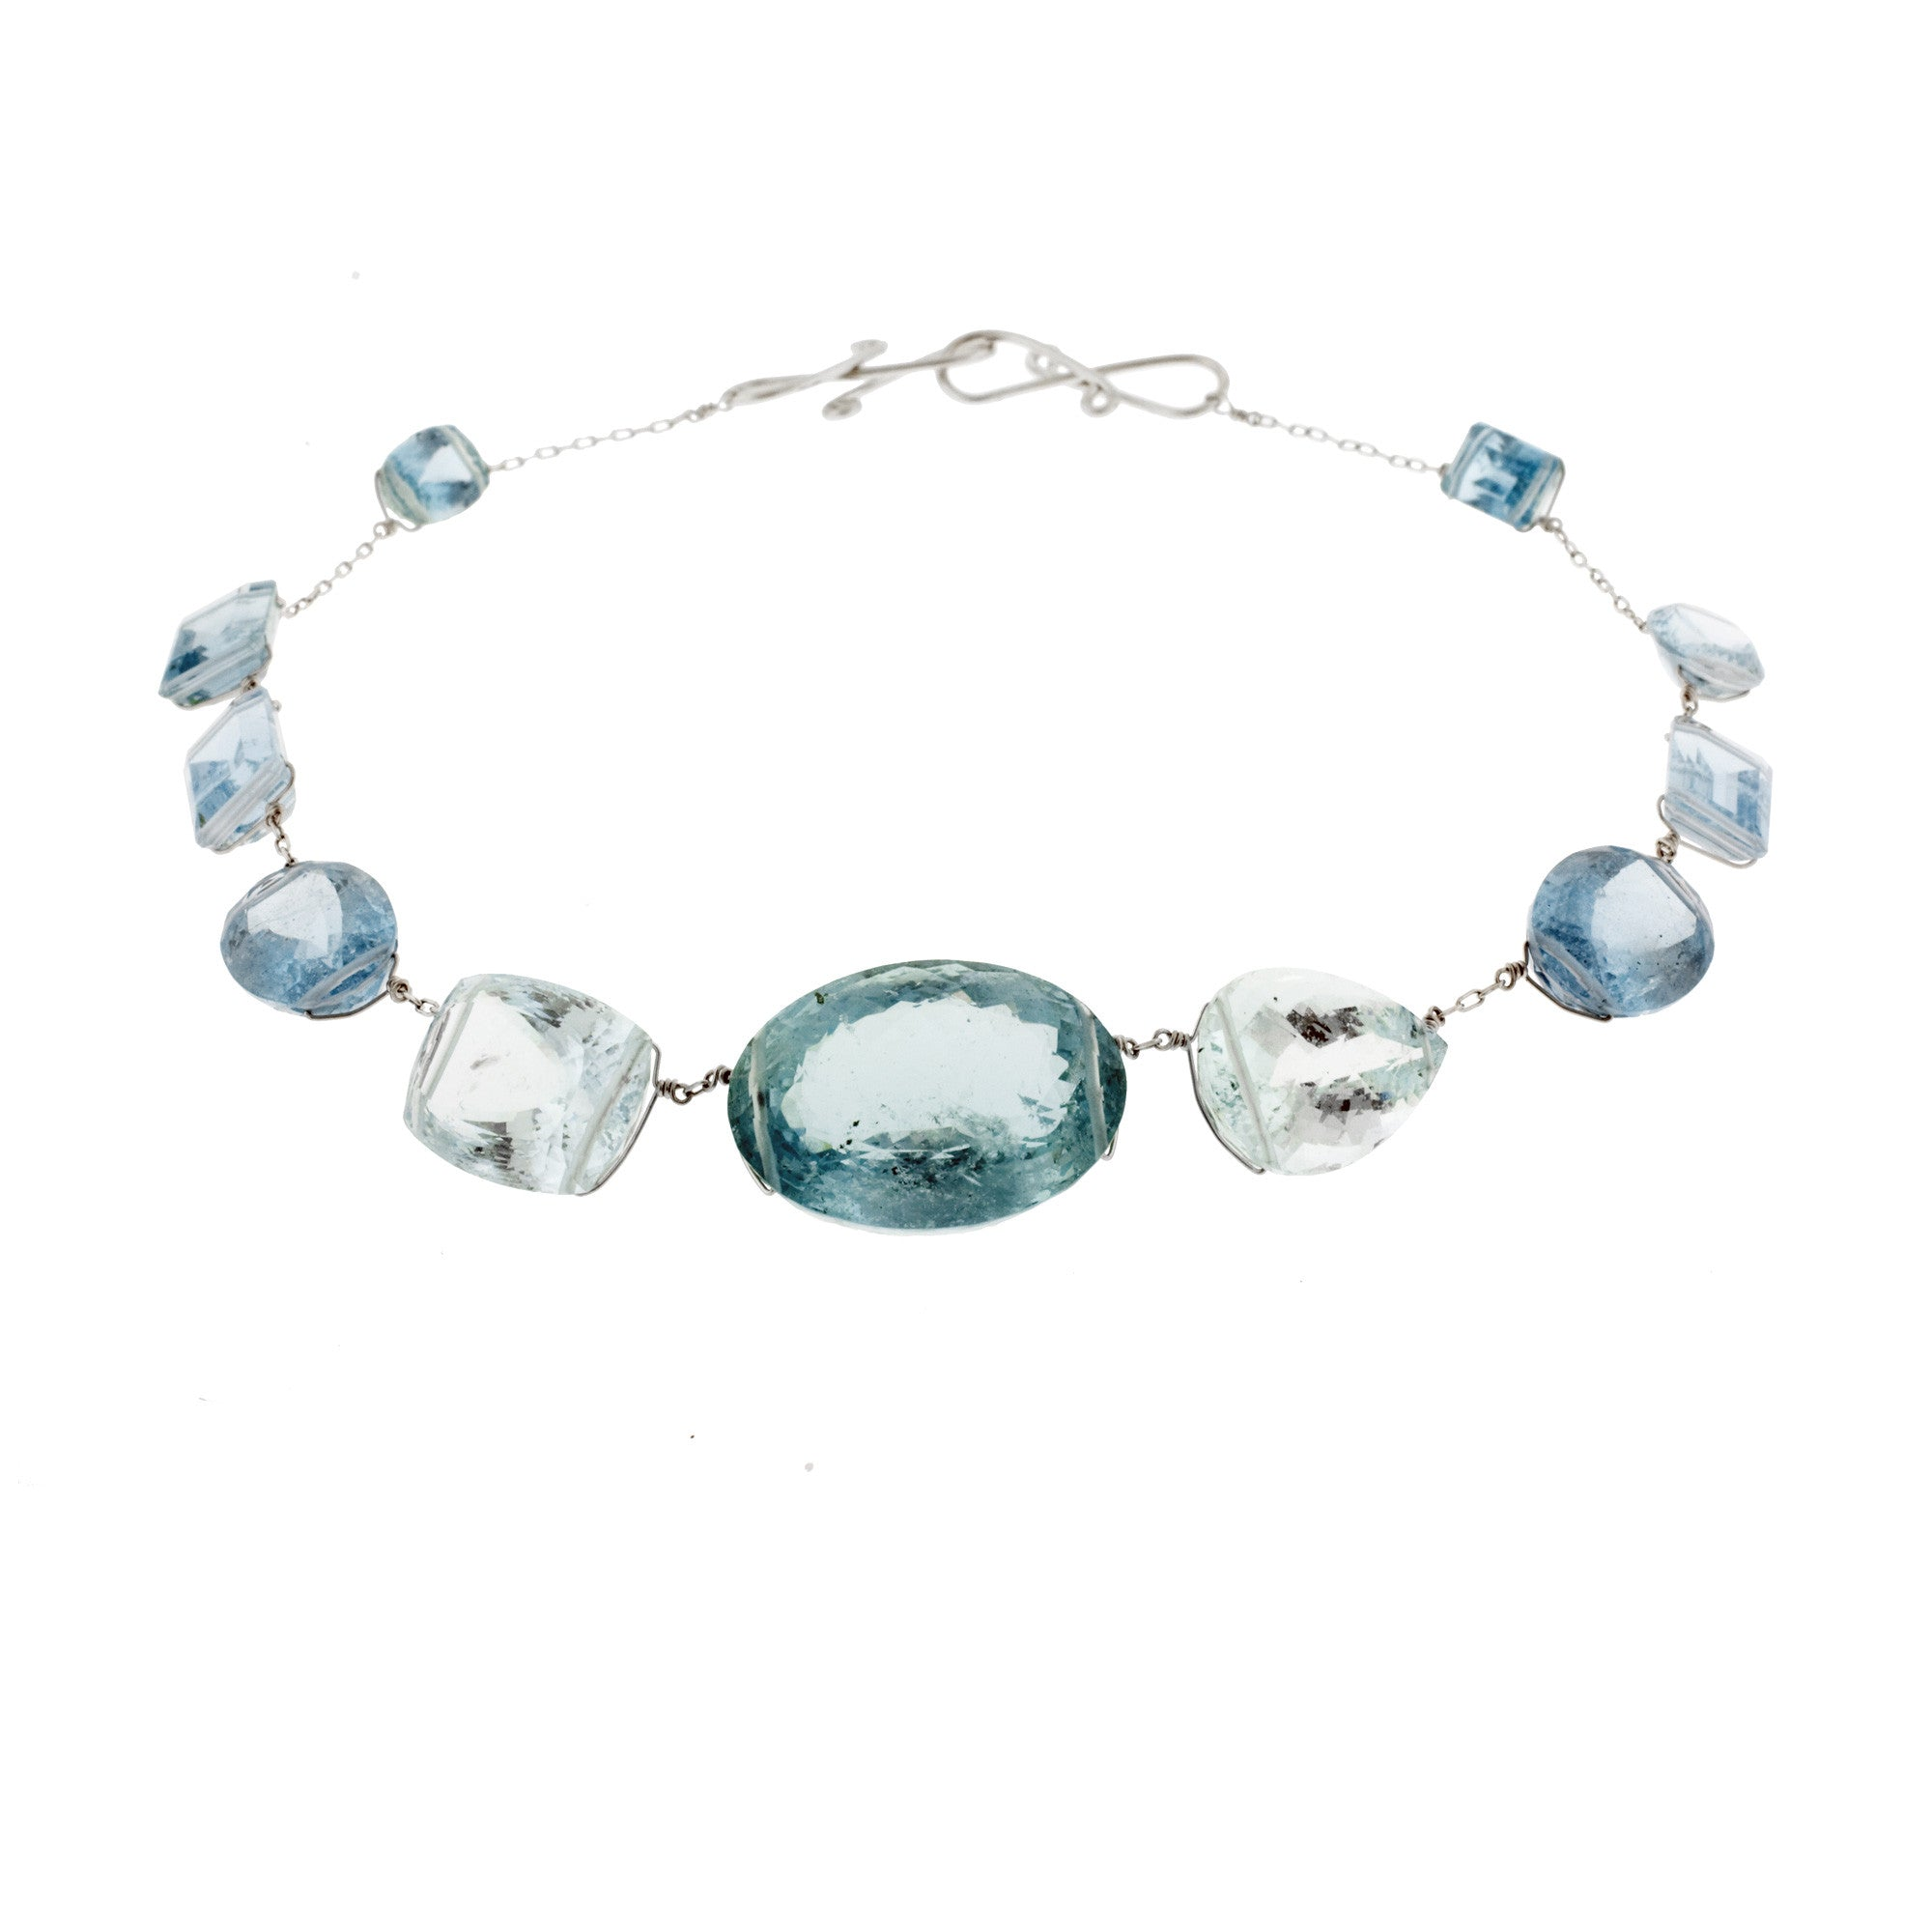 gold bracelet aquamarine milky jewelry lyst bangle station gallery product in ippolita